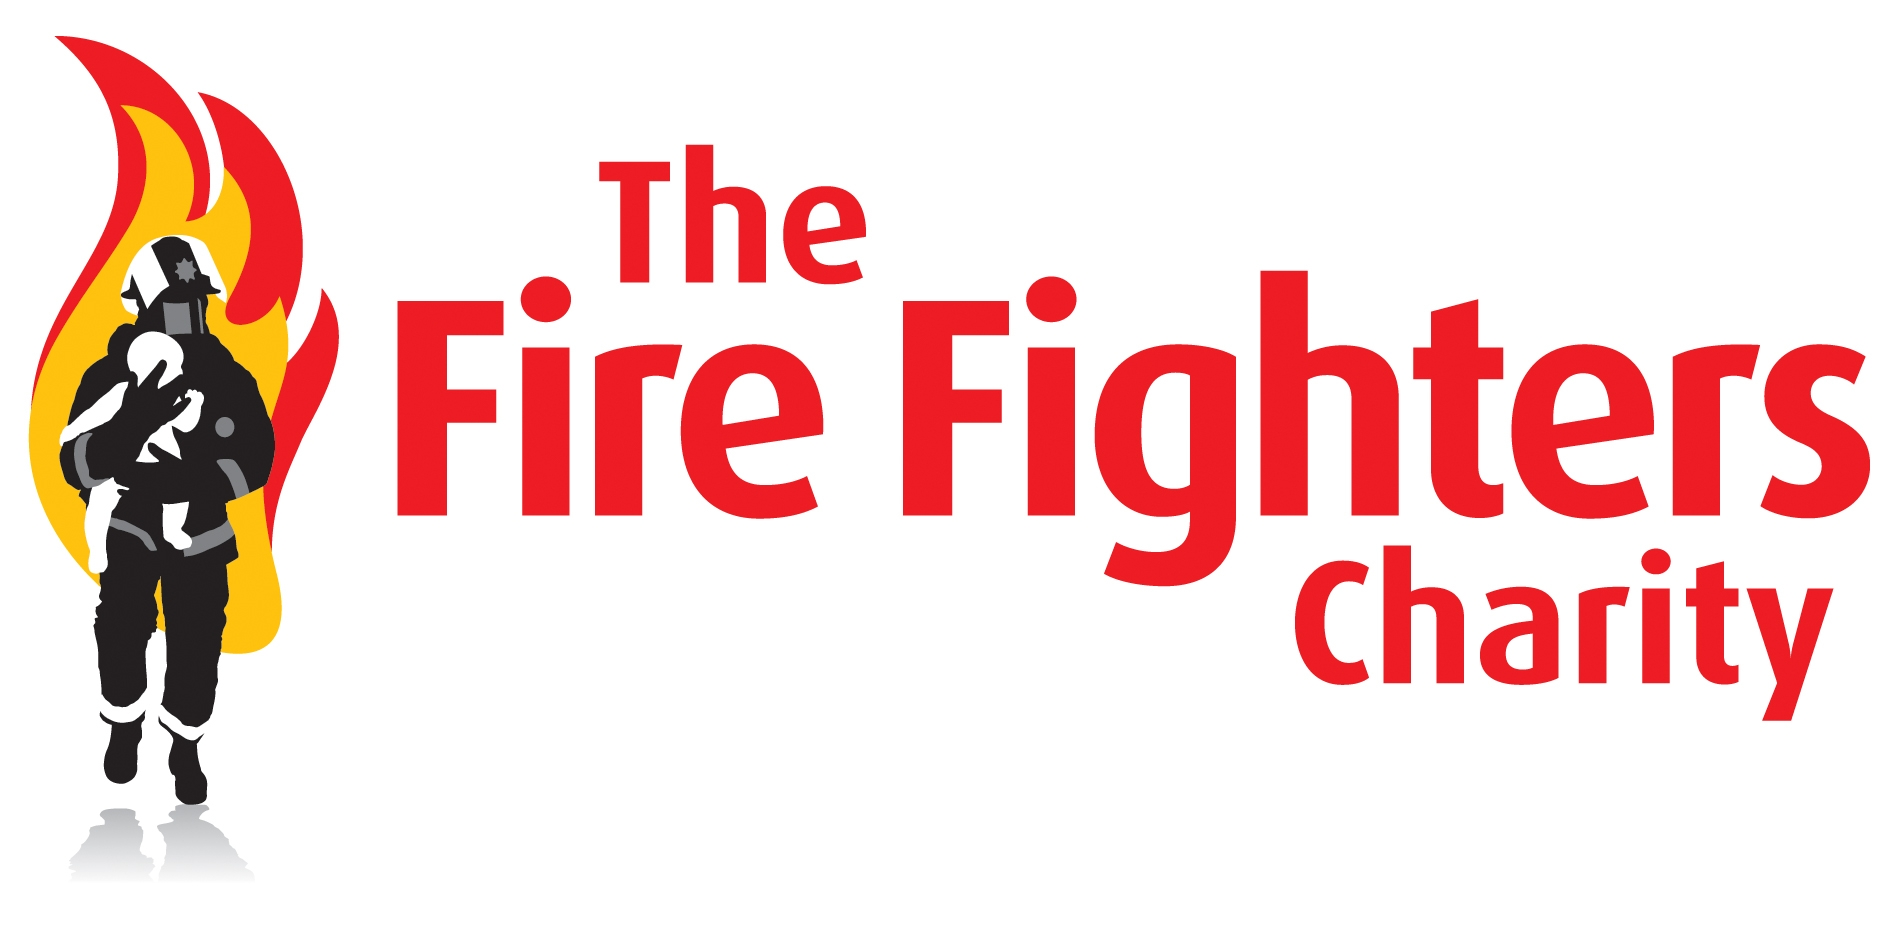 Firefighters Charity Logo